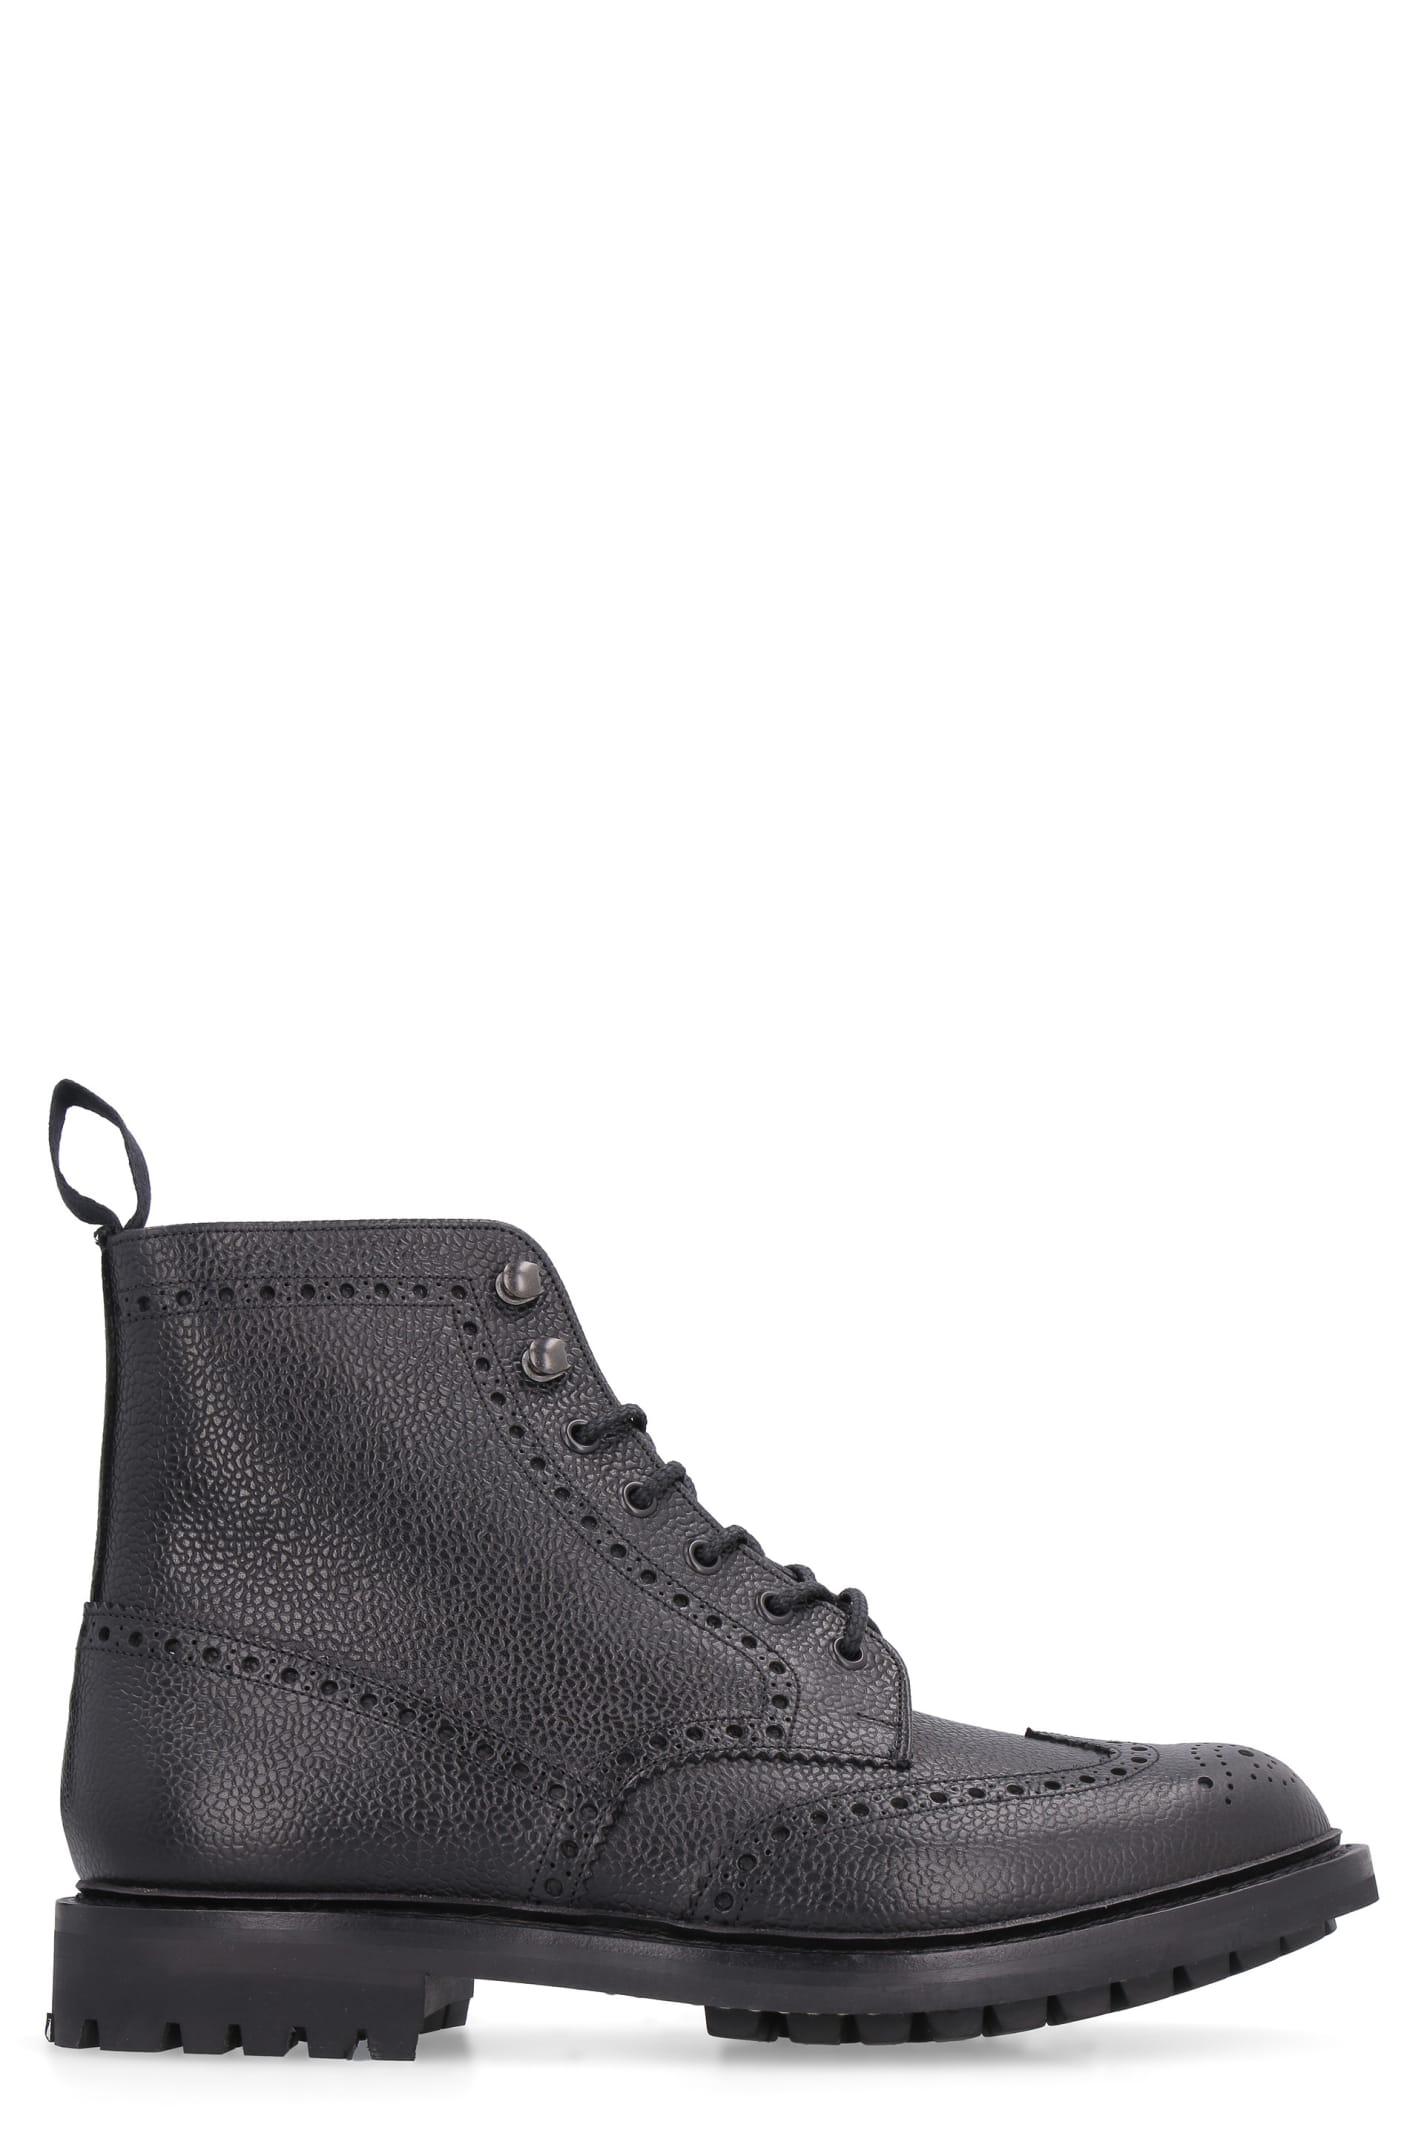 Churchs Mc Farlane 2 Pebbled Leather Boots With Brogues